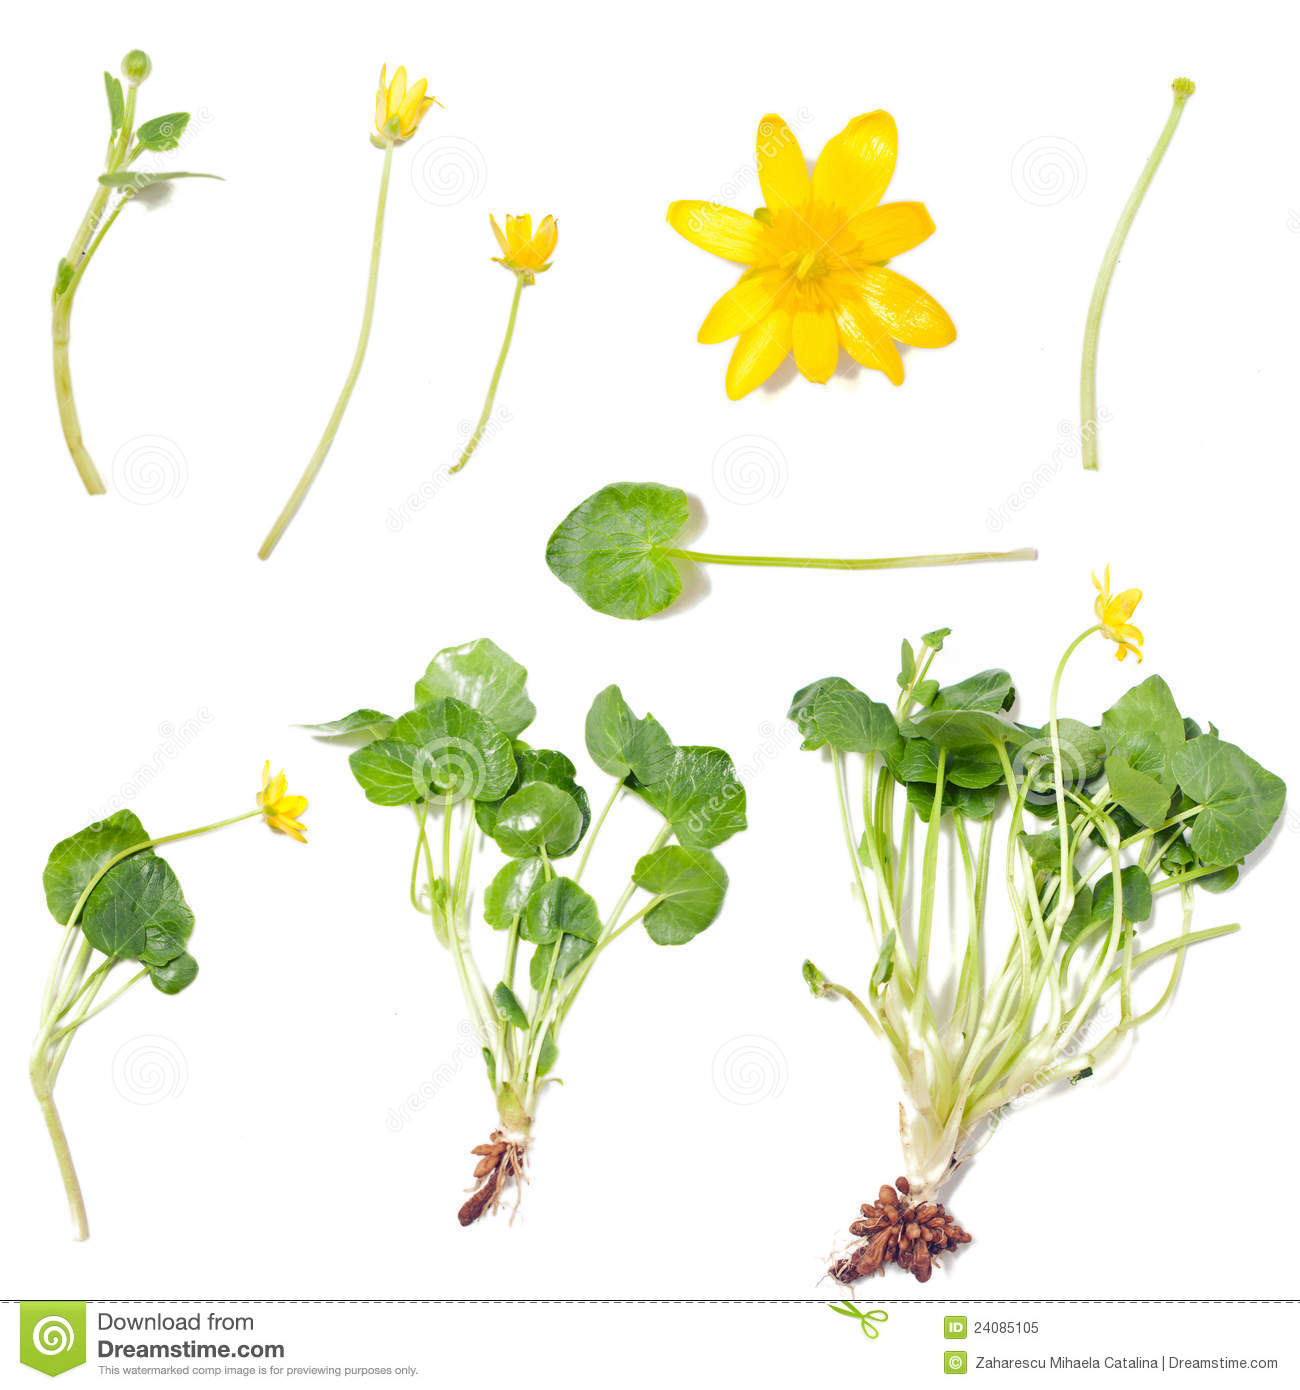 Ranunculus Ficaria (Lesser Celandine) Royalty Free Stock Photo - Image ...